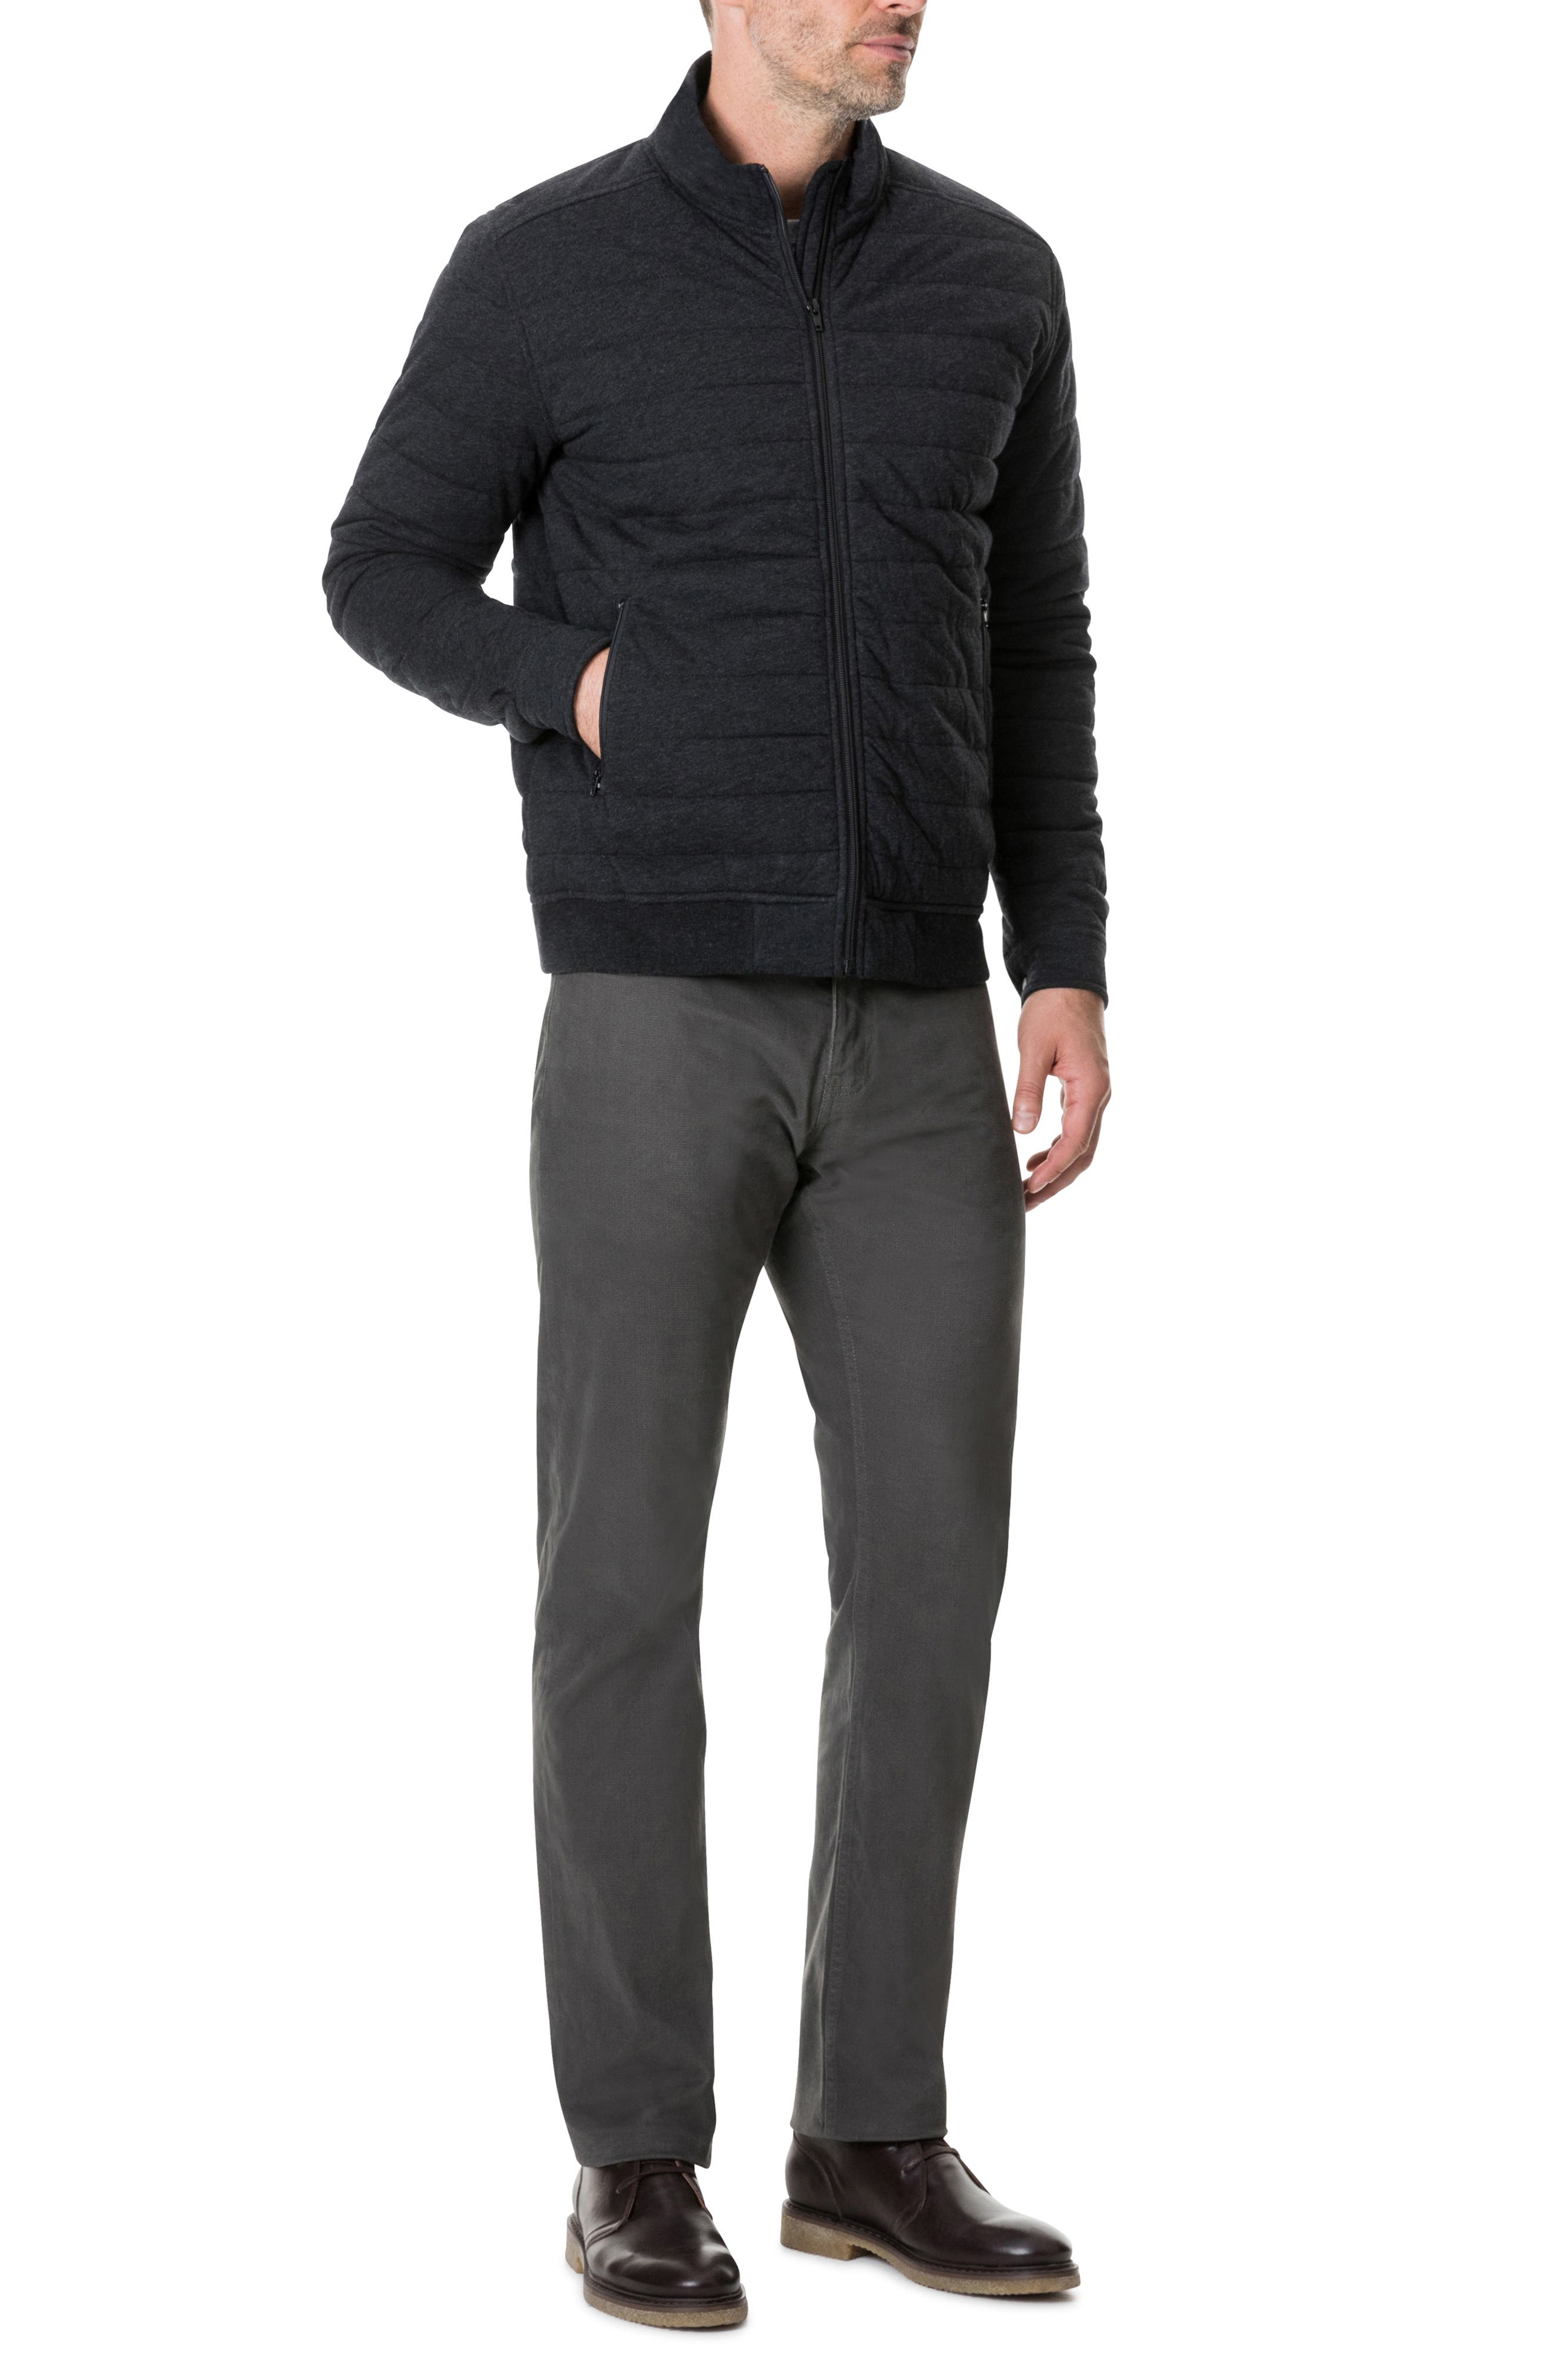 Birch Hill Regular Fit Jacket,                             Alternate thumbnail 4, color,                             CHARCOAL